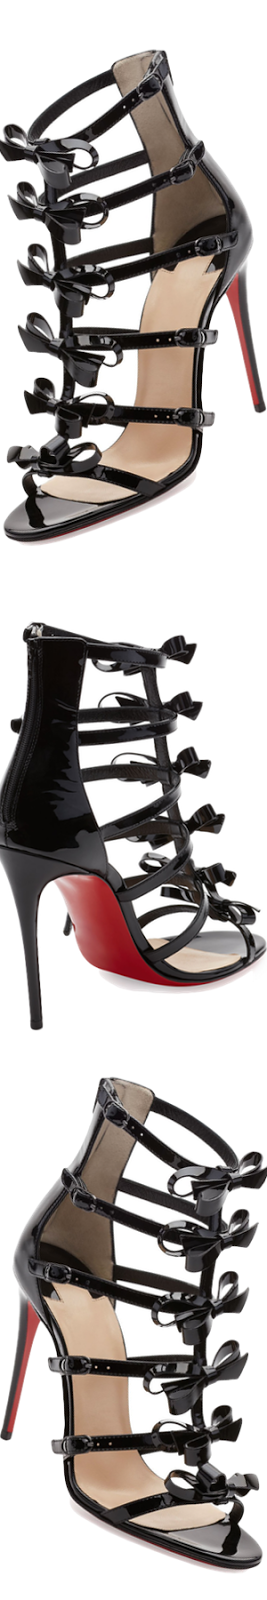 Christian Louboutin Girlystrappi Bow 100mm Red Sole Sandal, Black